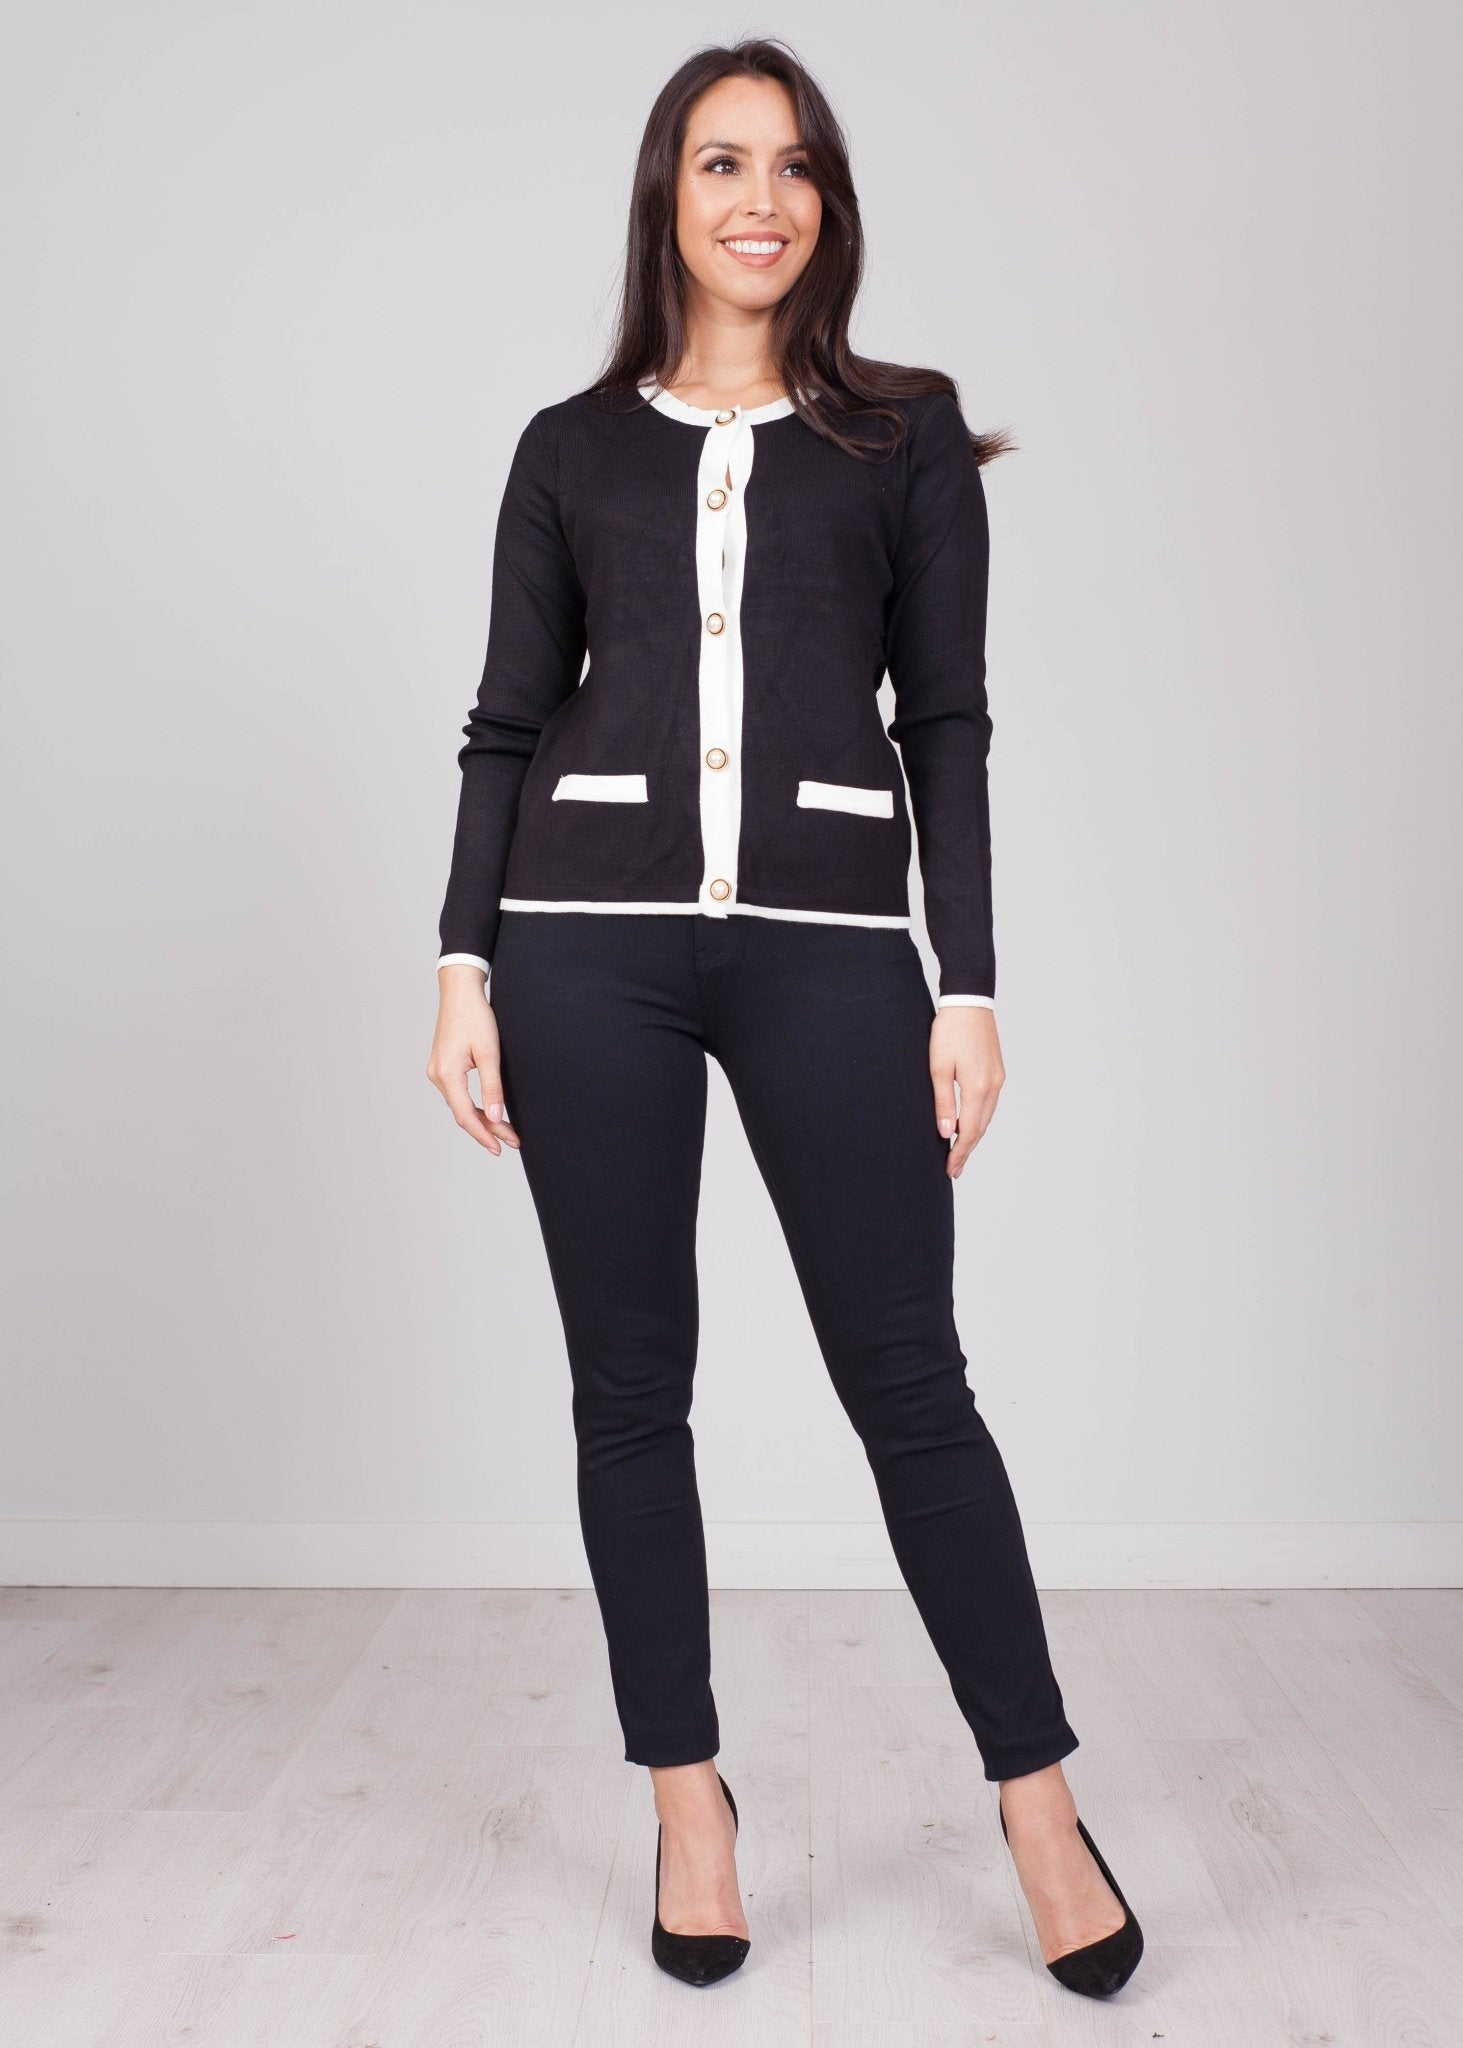 Emilia Black with White Trim Crop Cardigan - The Walk in Wardrobe